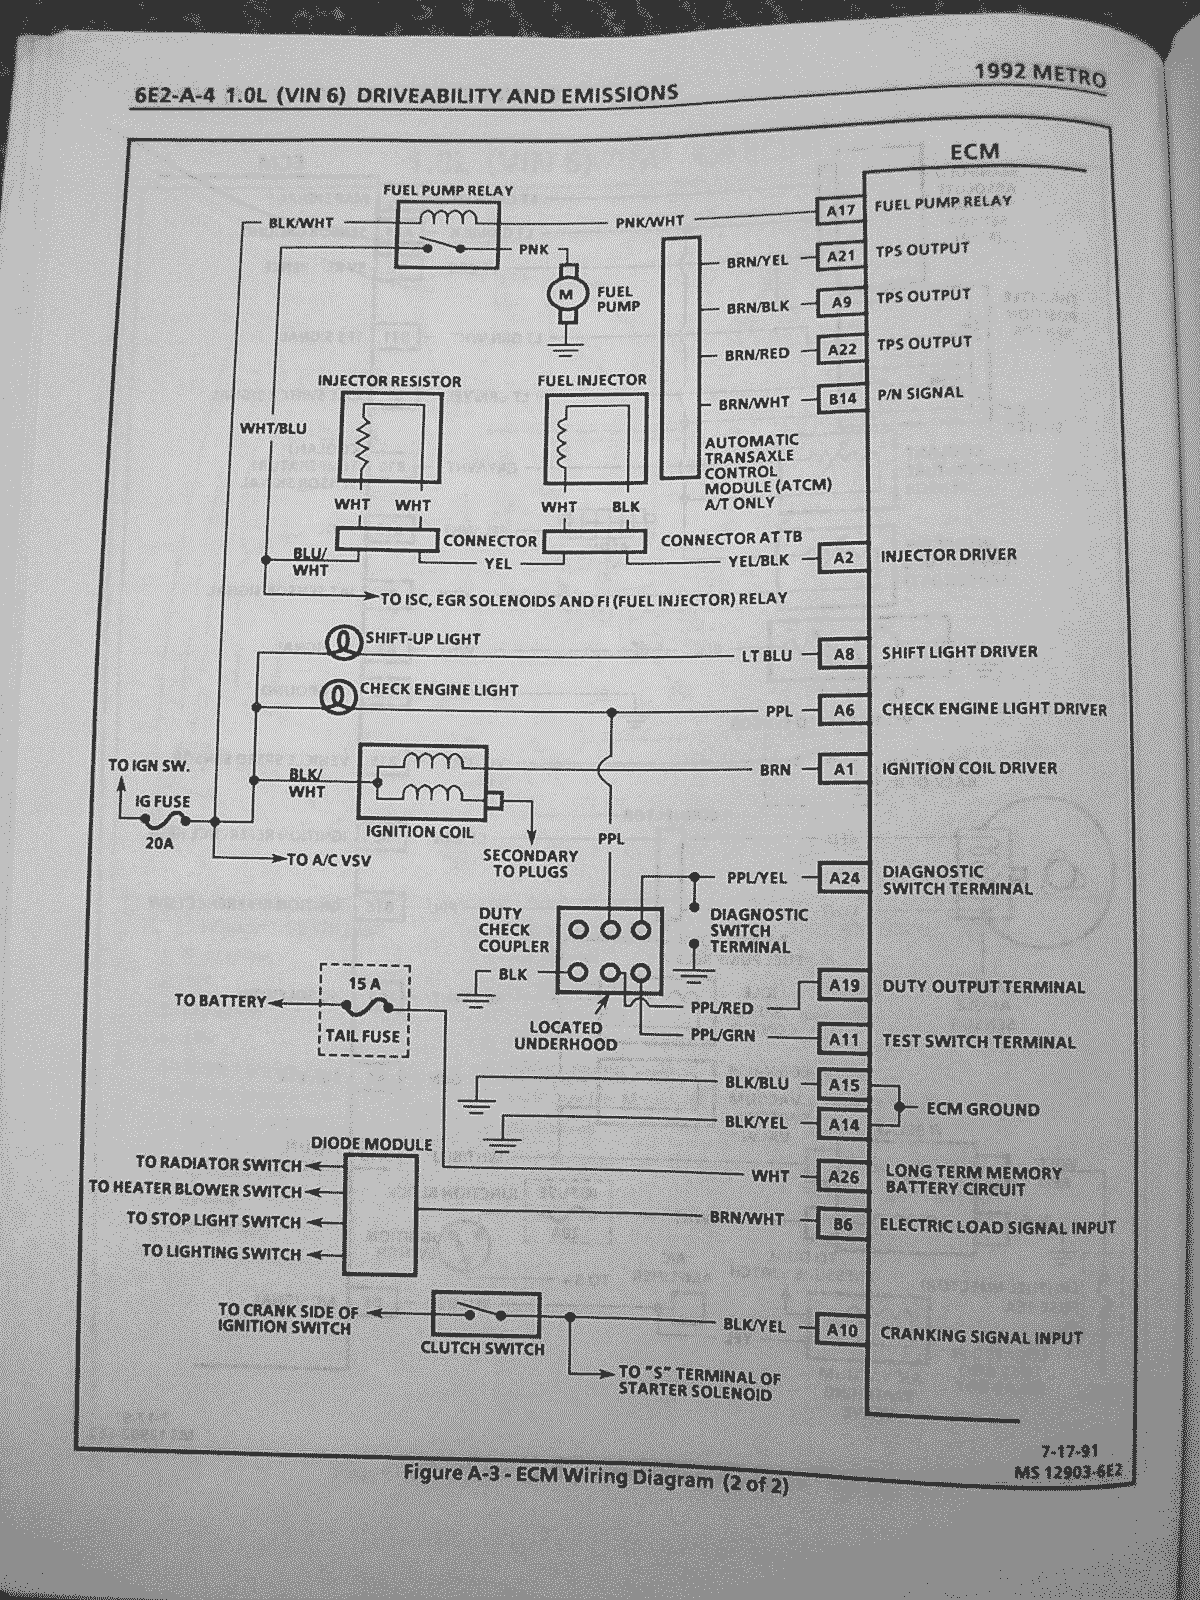 6e2 a 4 swift wiring diagram swift wiring diagram \u2022 free wiring diagrams wiring diagram for 1994 geo prizm at mifinder.co